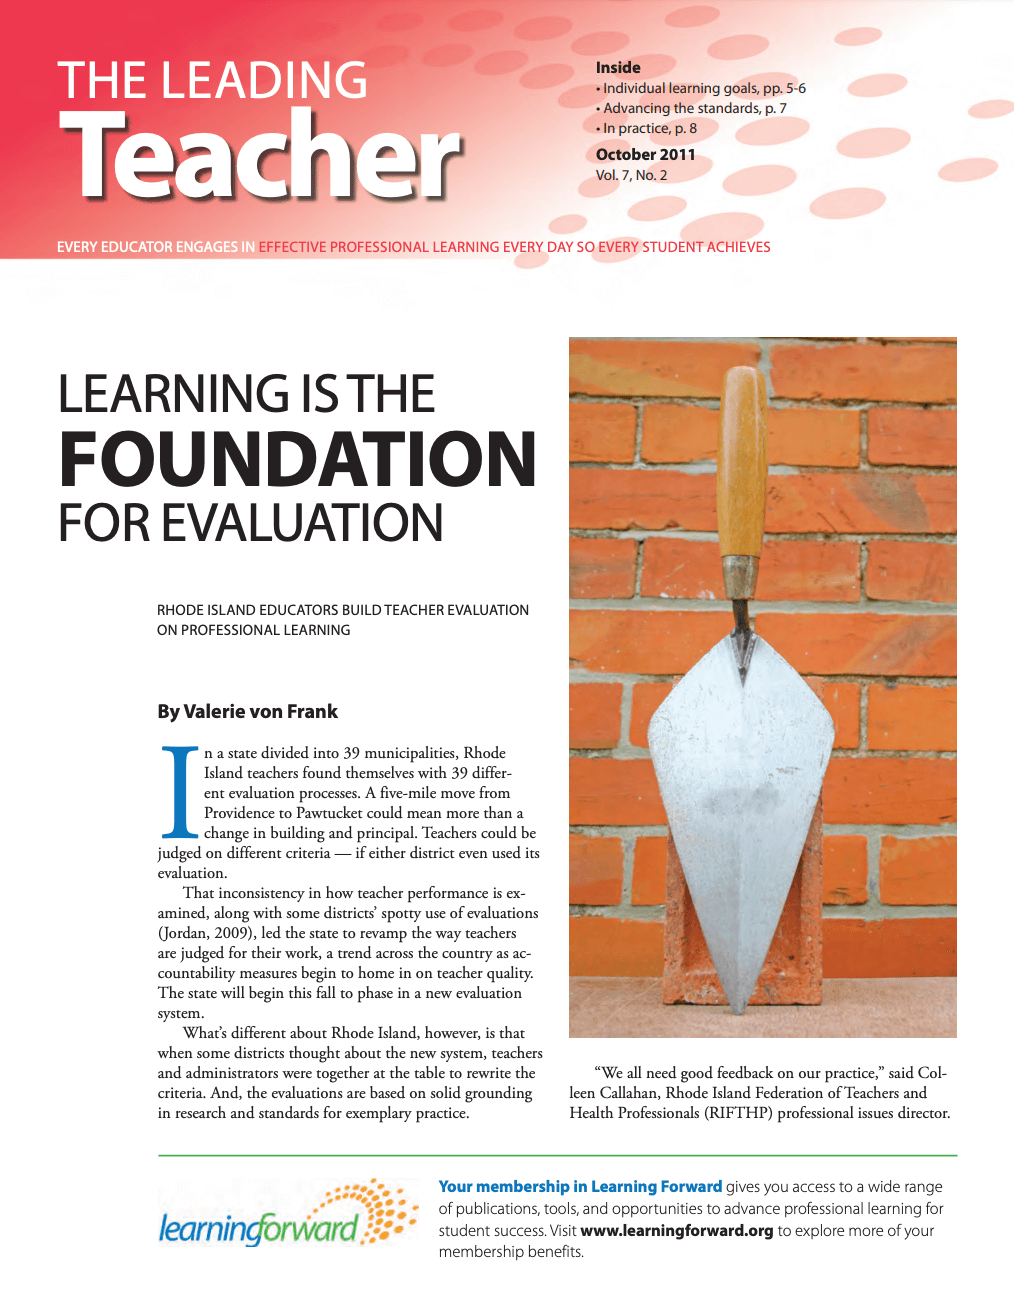 the-leading-teacher-october-2011-vol-7-no-2